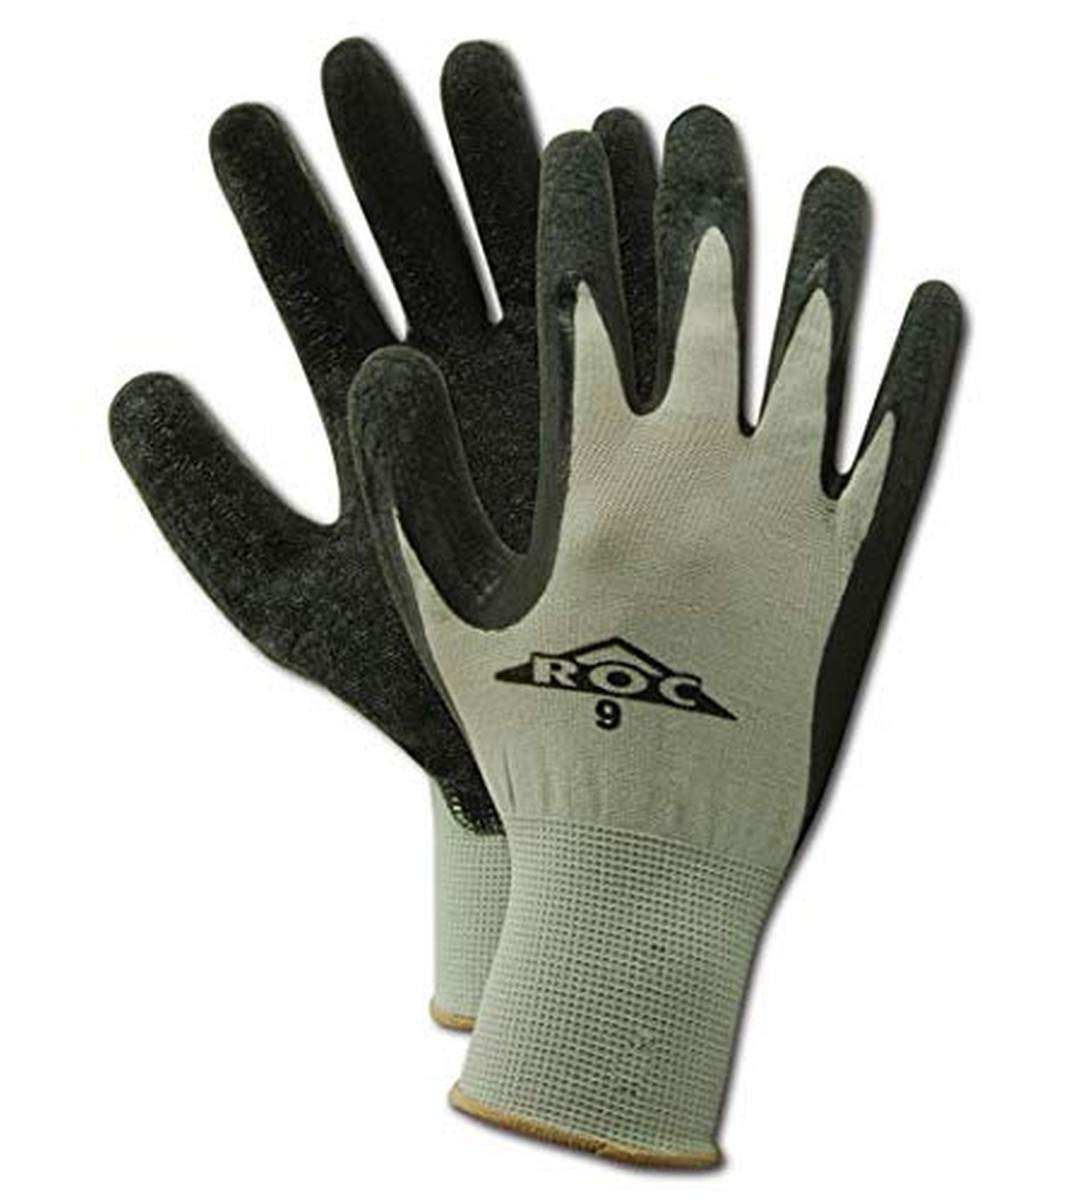 Magid Glove & Safety ROC GP190 Nylon Glove, Black Latex Palm Coating, Knit Wrist Cuff, GP19010-2, Grey, 24 Pair